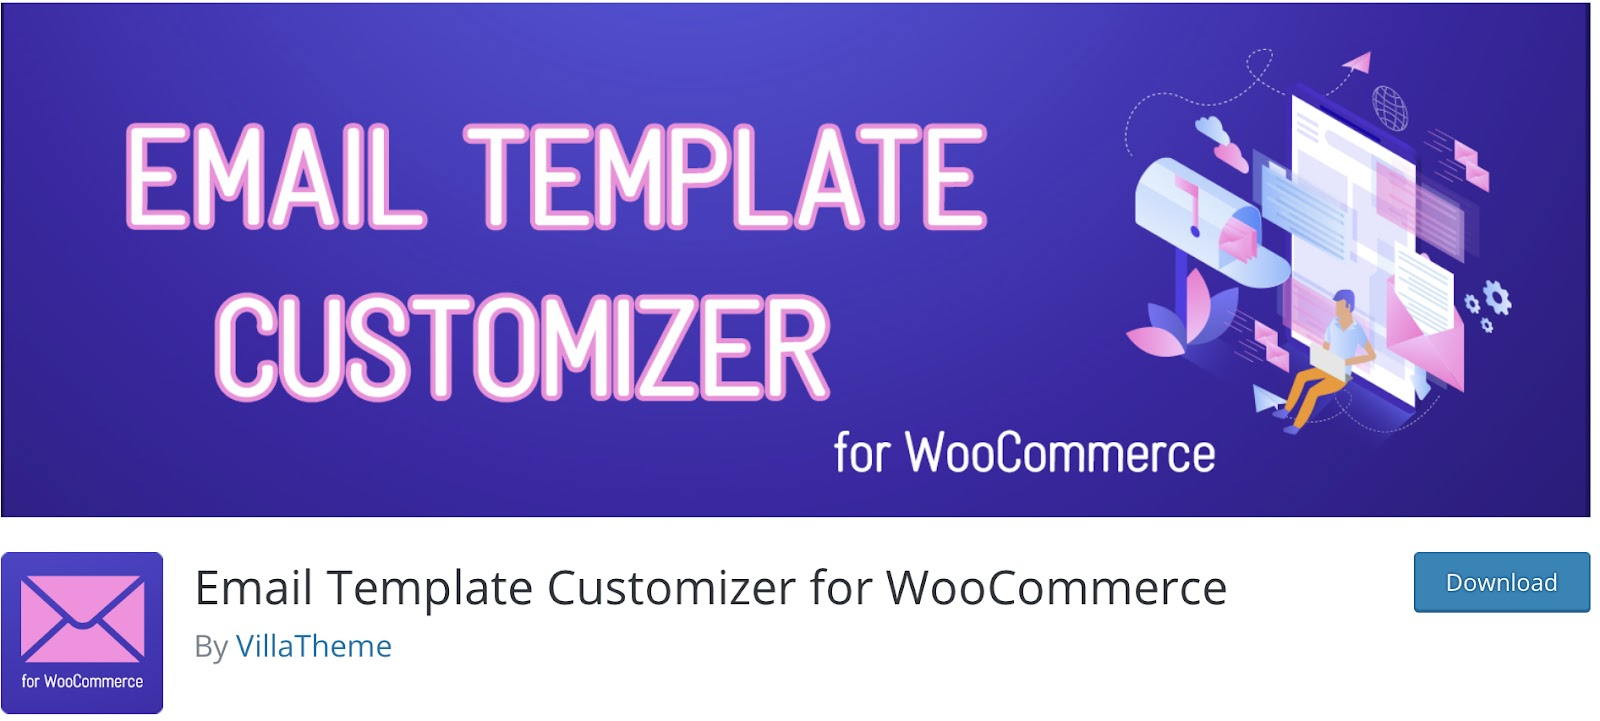 Email Template Customizer for WooCommerce by VillaTheme